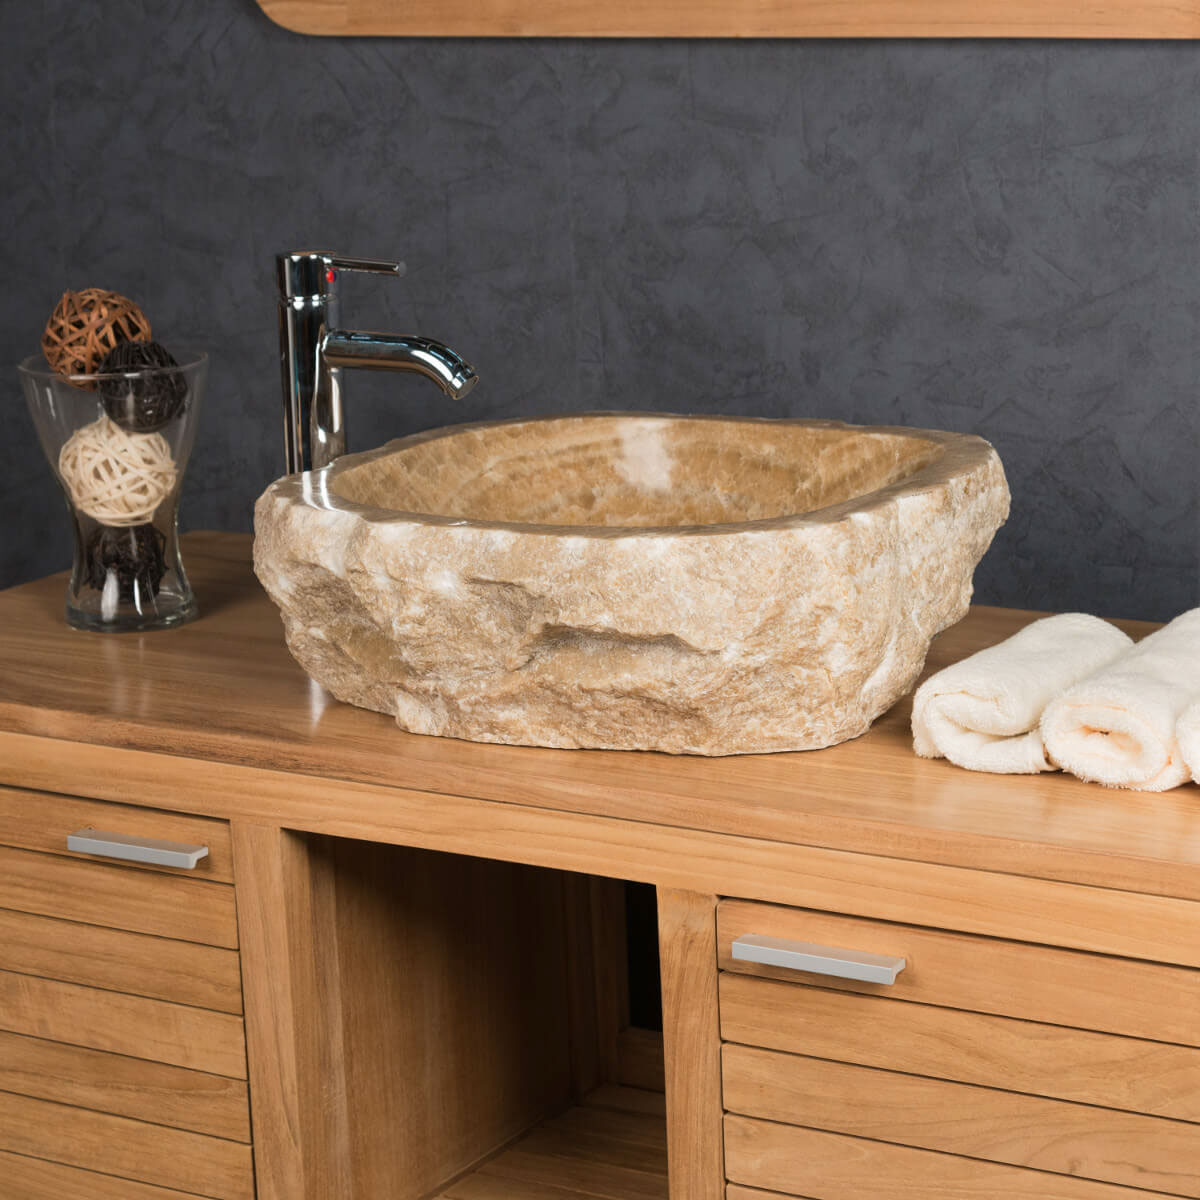 Vasque poser en pierre d 39 onyx l 40 45 cm for Element salle de bain